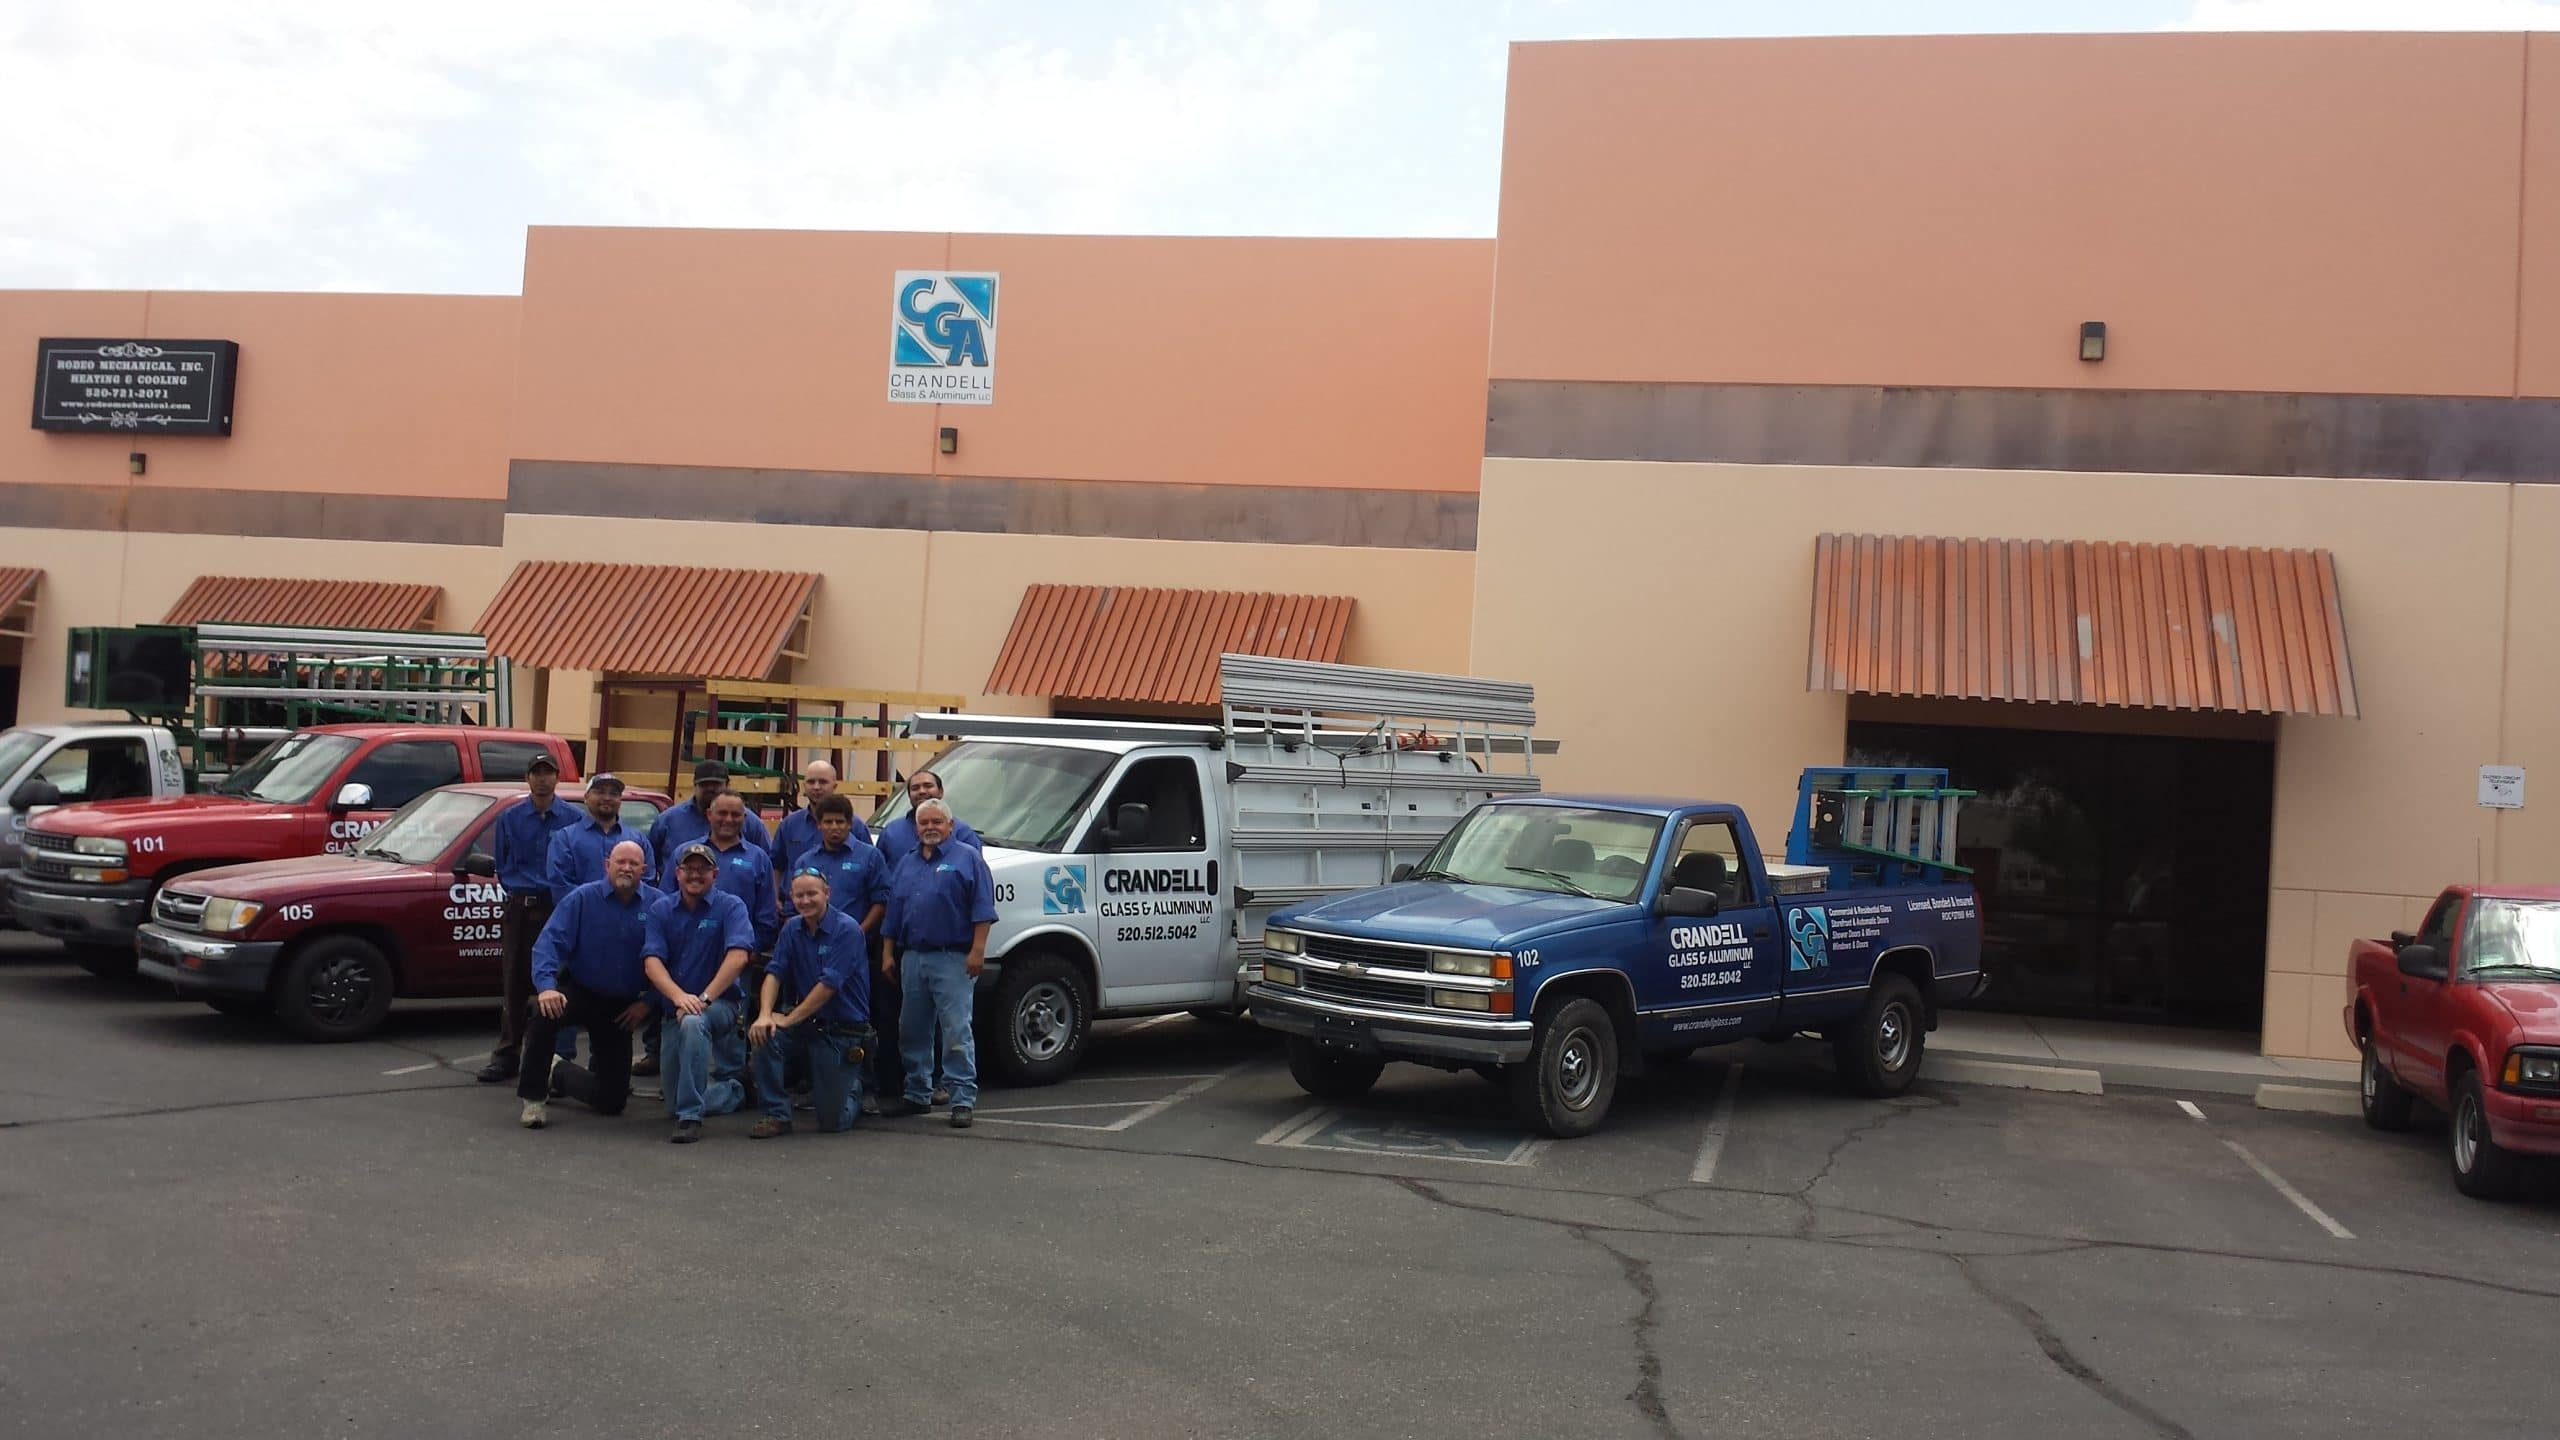 Crandell Glass employees and service trucks outside building